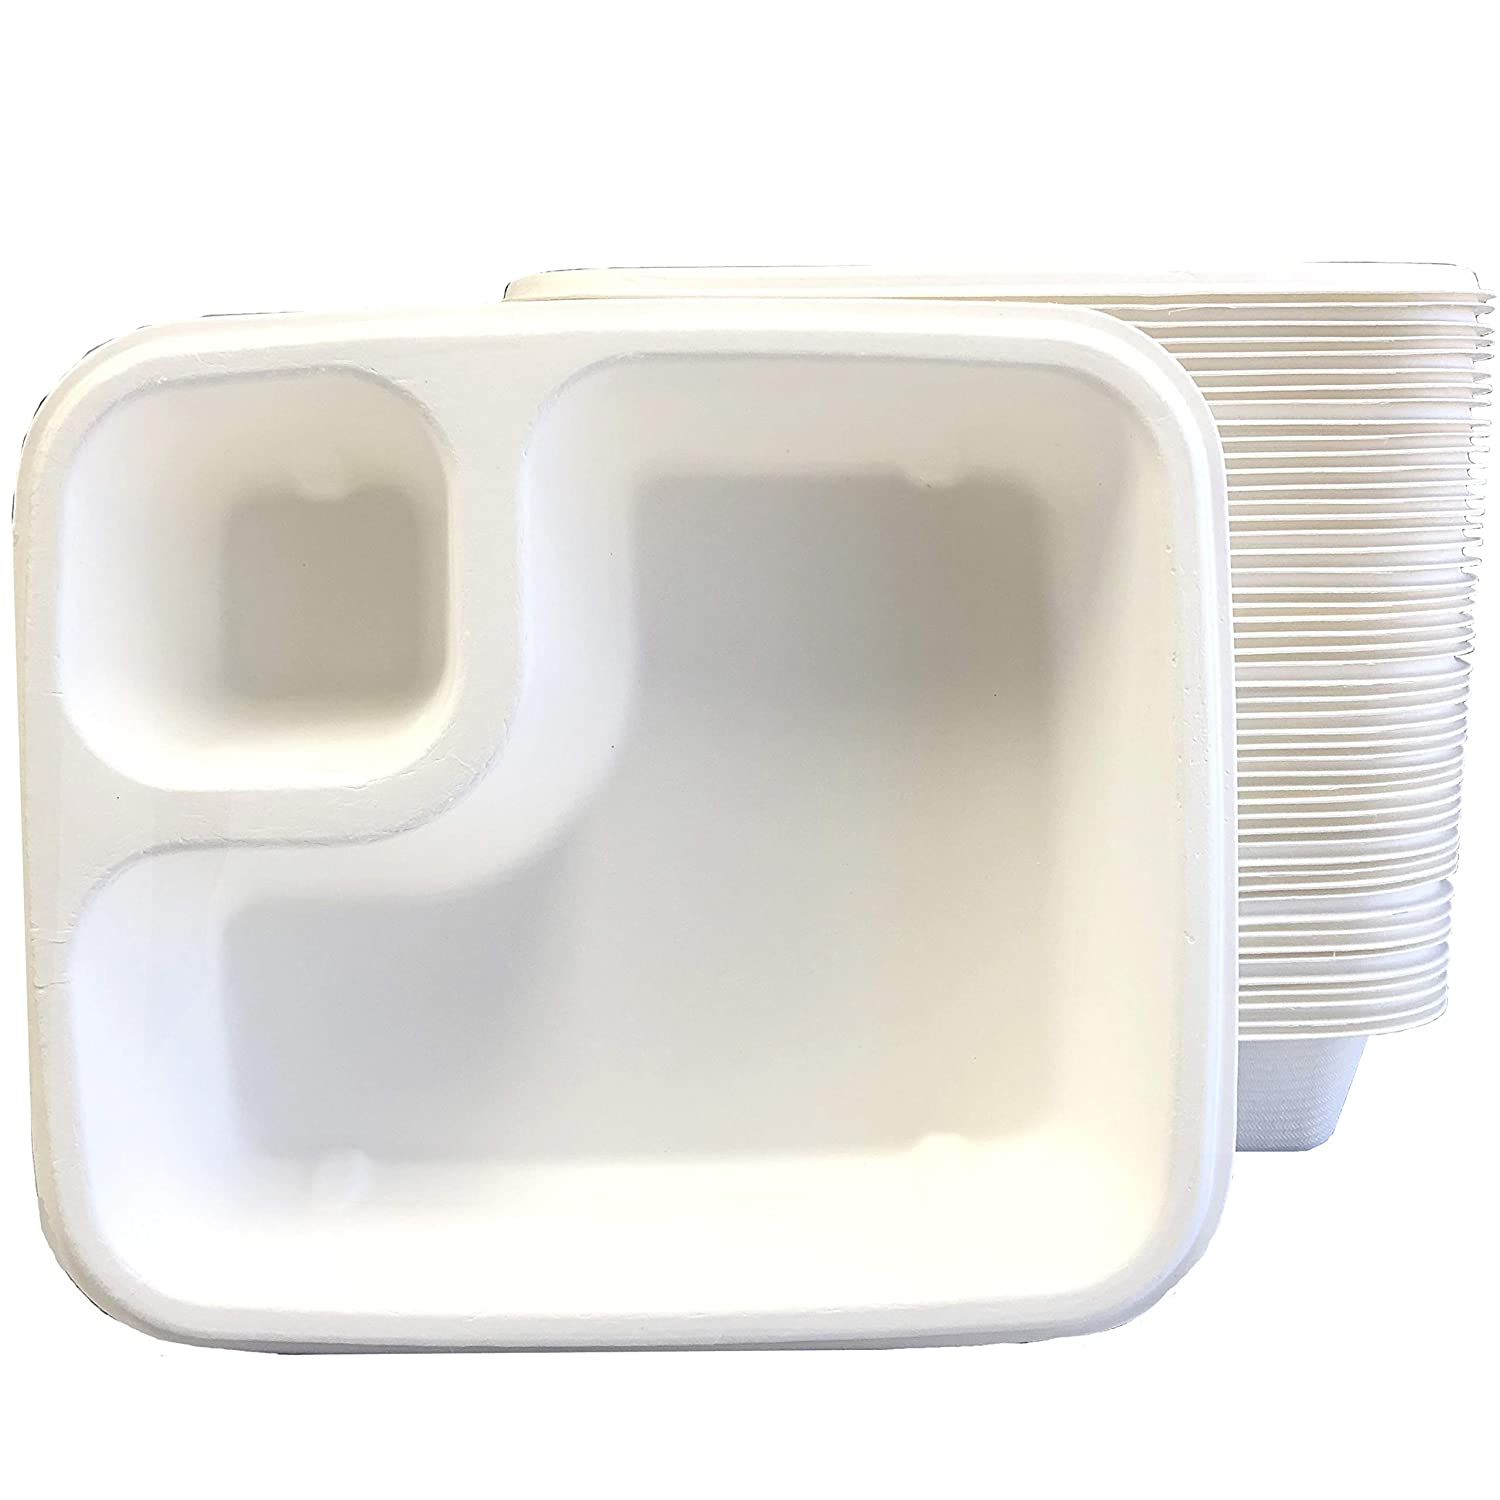 Compostable 2 Compartment Disposable Nacho Food Trays - Sugarcane Bagasse - Biodegradable Eco-Friendly - 50 Pack